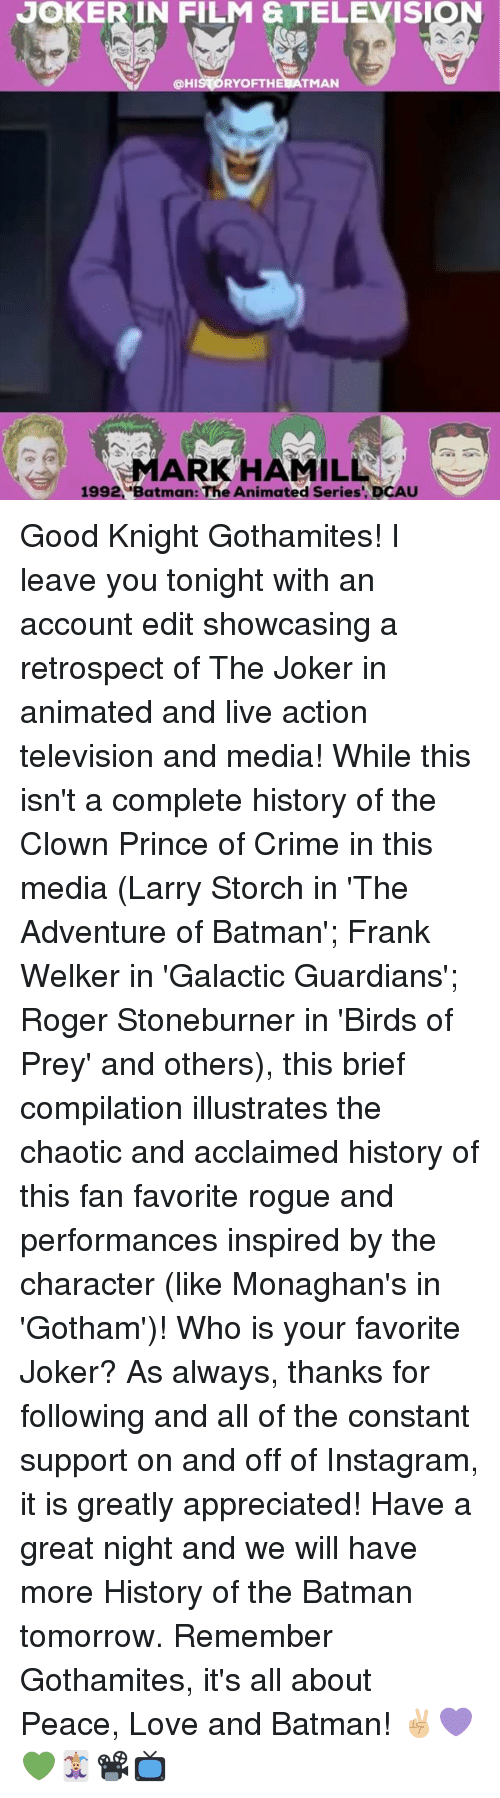 Crime, Joker, and Memes: JOKER IN FILM & TELEVISIO  HI  OF THE BATMAN  1992, Batman: The Animated Series' DCAU Good Knight Gothamites! I leave you tonight with an account edit showcasing a retrospect of The Joker in animated and live action television and media! While this isn't a complete history of the Clown Prince of Crime in this media (Larry Storch in 'The Adventure of Batman'; Frank Welker in 'Galactic Guardians'; Roger Stoneburner in 'Birds of Prey' and others), this brief compilation illustrates the chaotic and acclaimed history of this fan favorite rogue and performances inspired by the character (like Monaghan's in 'Gotham')! Who is your favorite Joker? As always, thanks for following and all of the constant support on and off of Instagram, it is greatly appreciated! Have a great night and we will have more History of the Batman tomorrow. Remember Gothamites, it's all about Peace, Love and Batman! ✌🏼️💜💚🃏📽📺